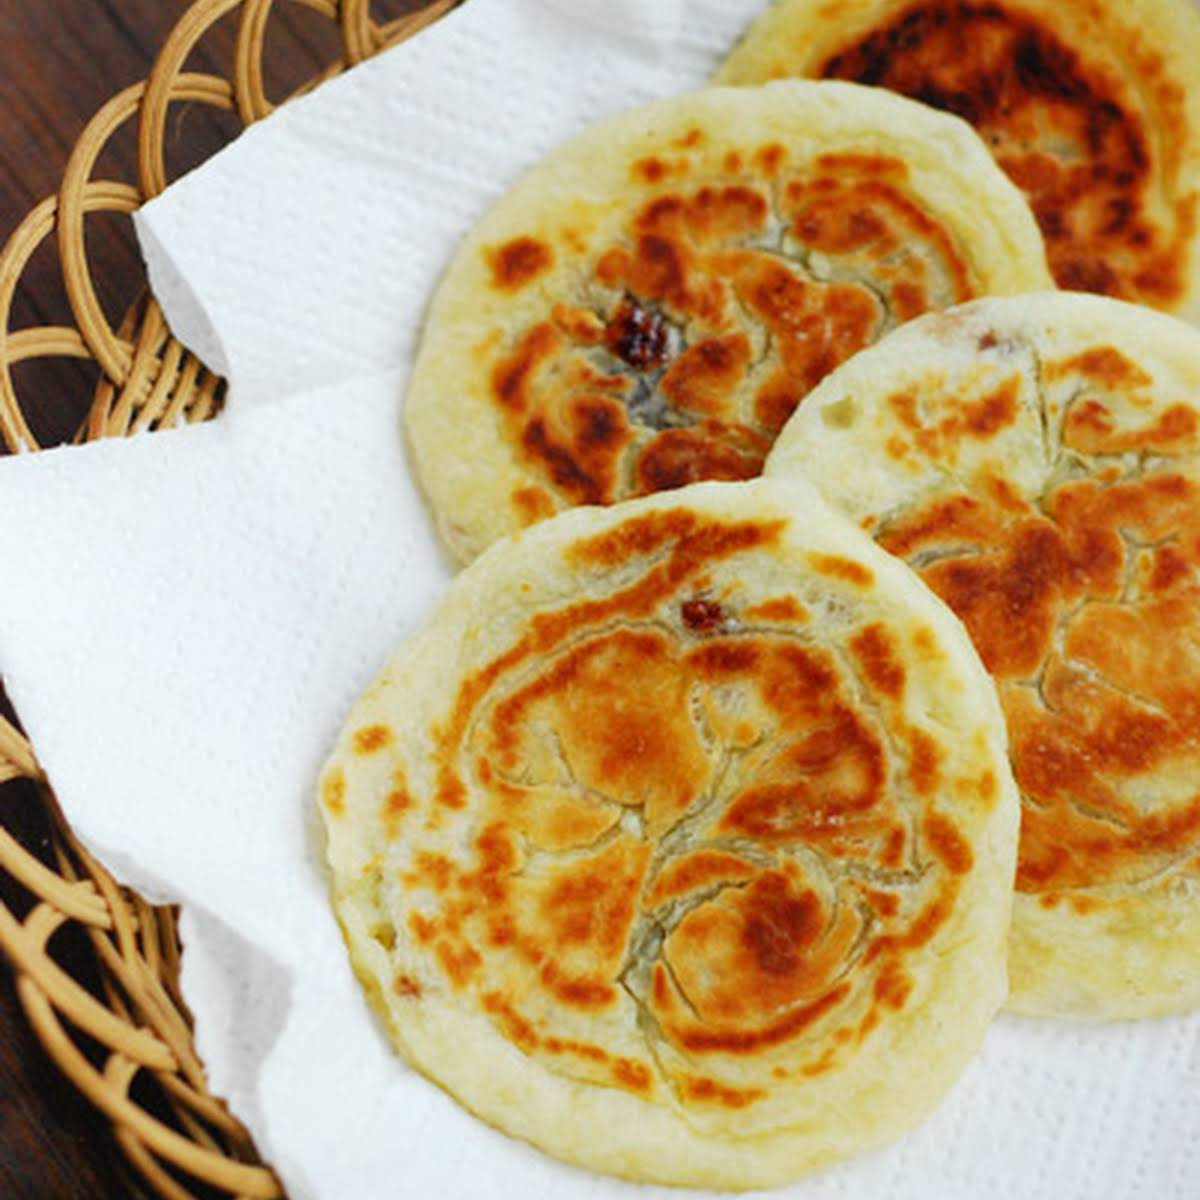 Hoddeok (Hotteok) – Sweet Korean Pancake